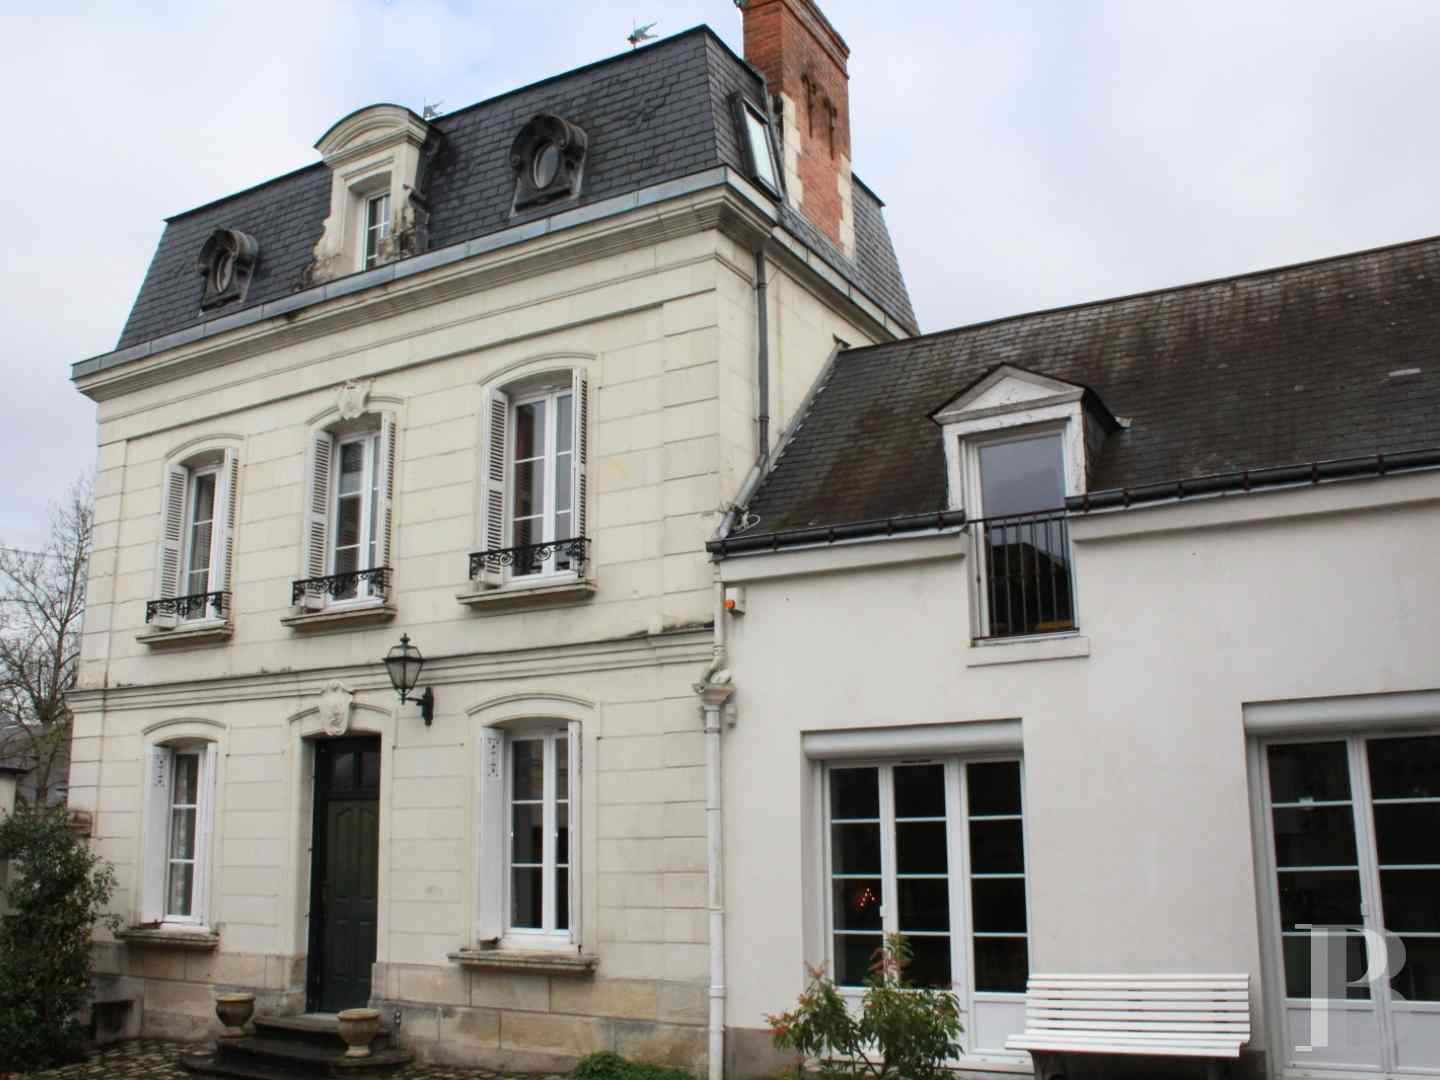 mansion houses for sale France center val de loire mansion houses - 1 zoom